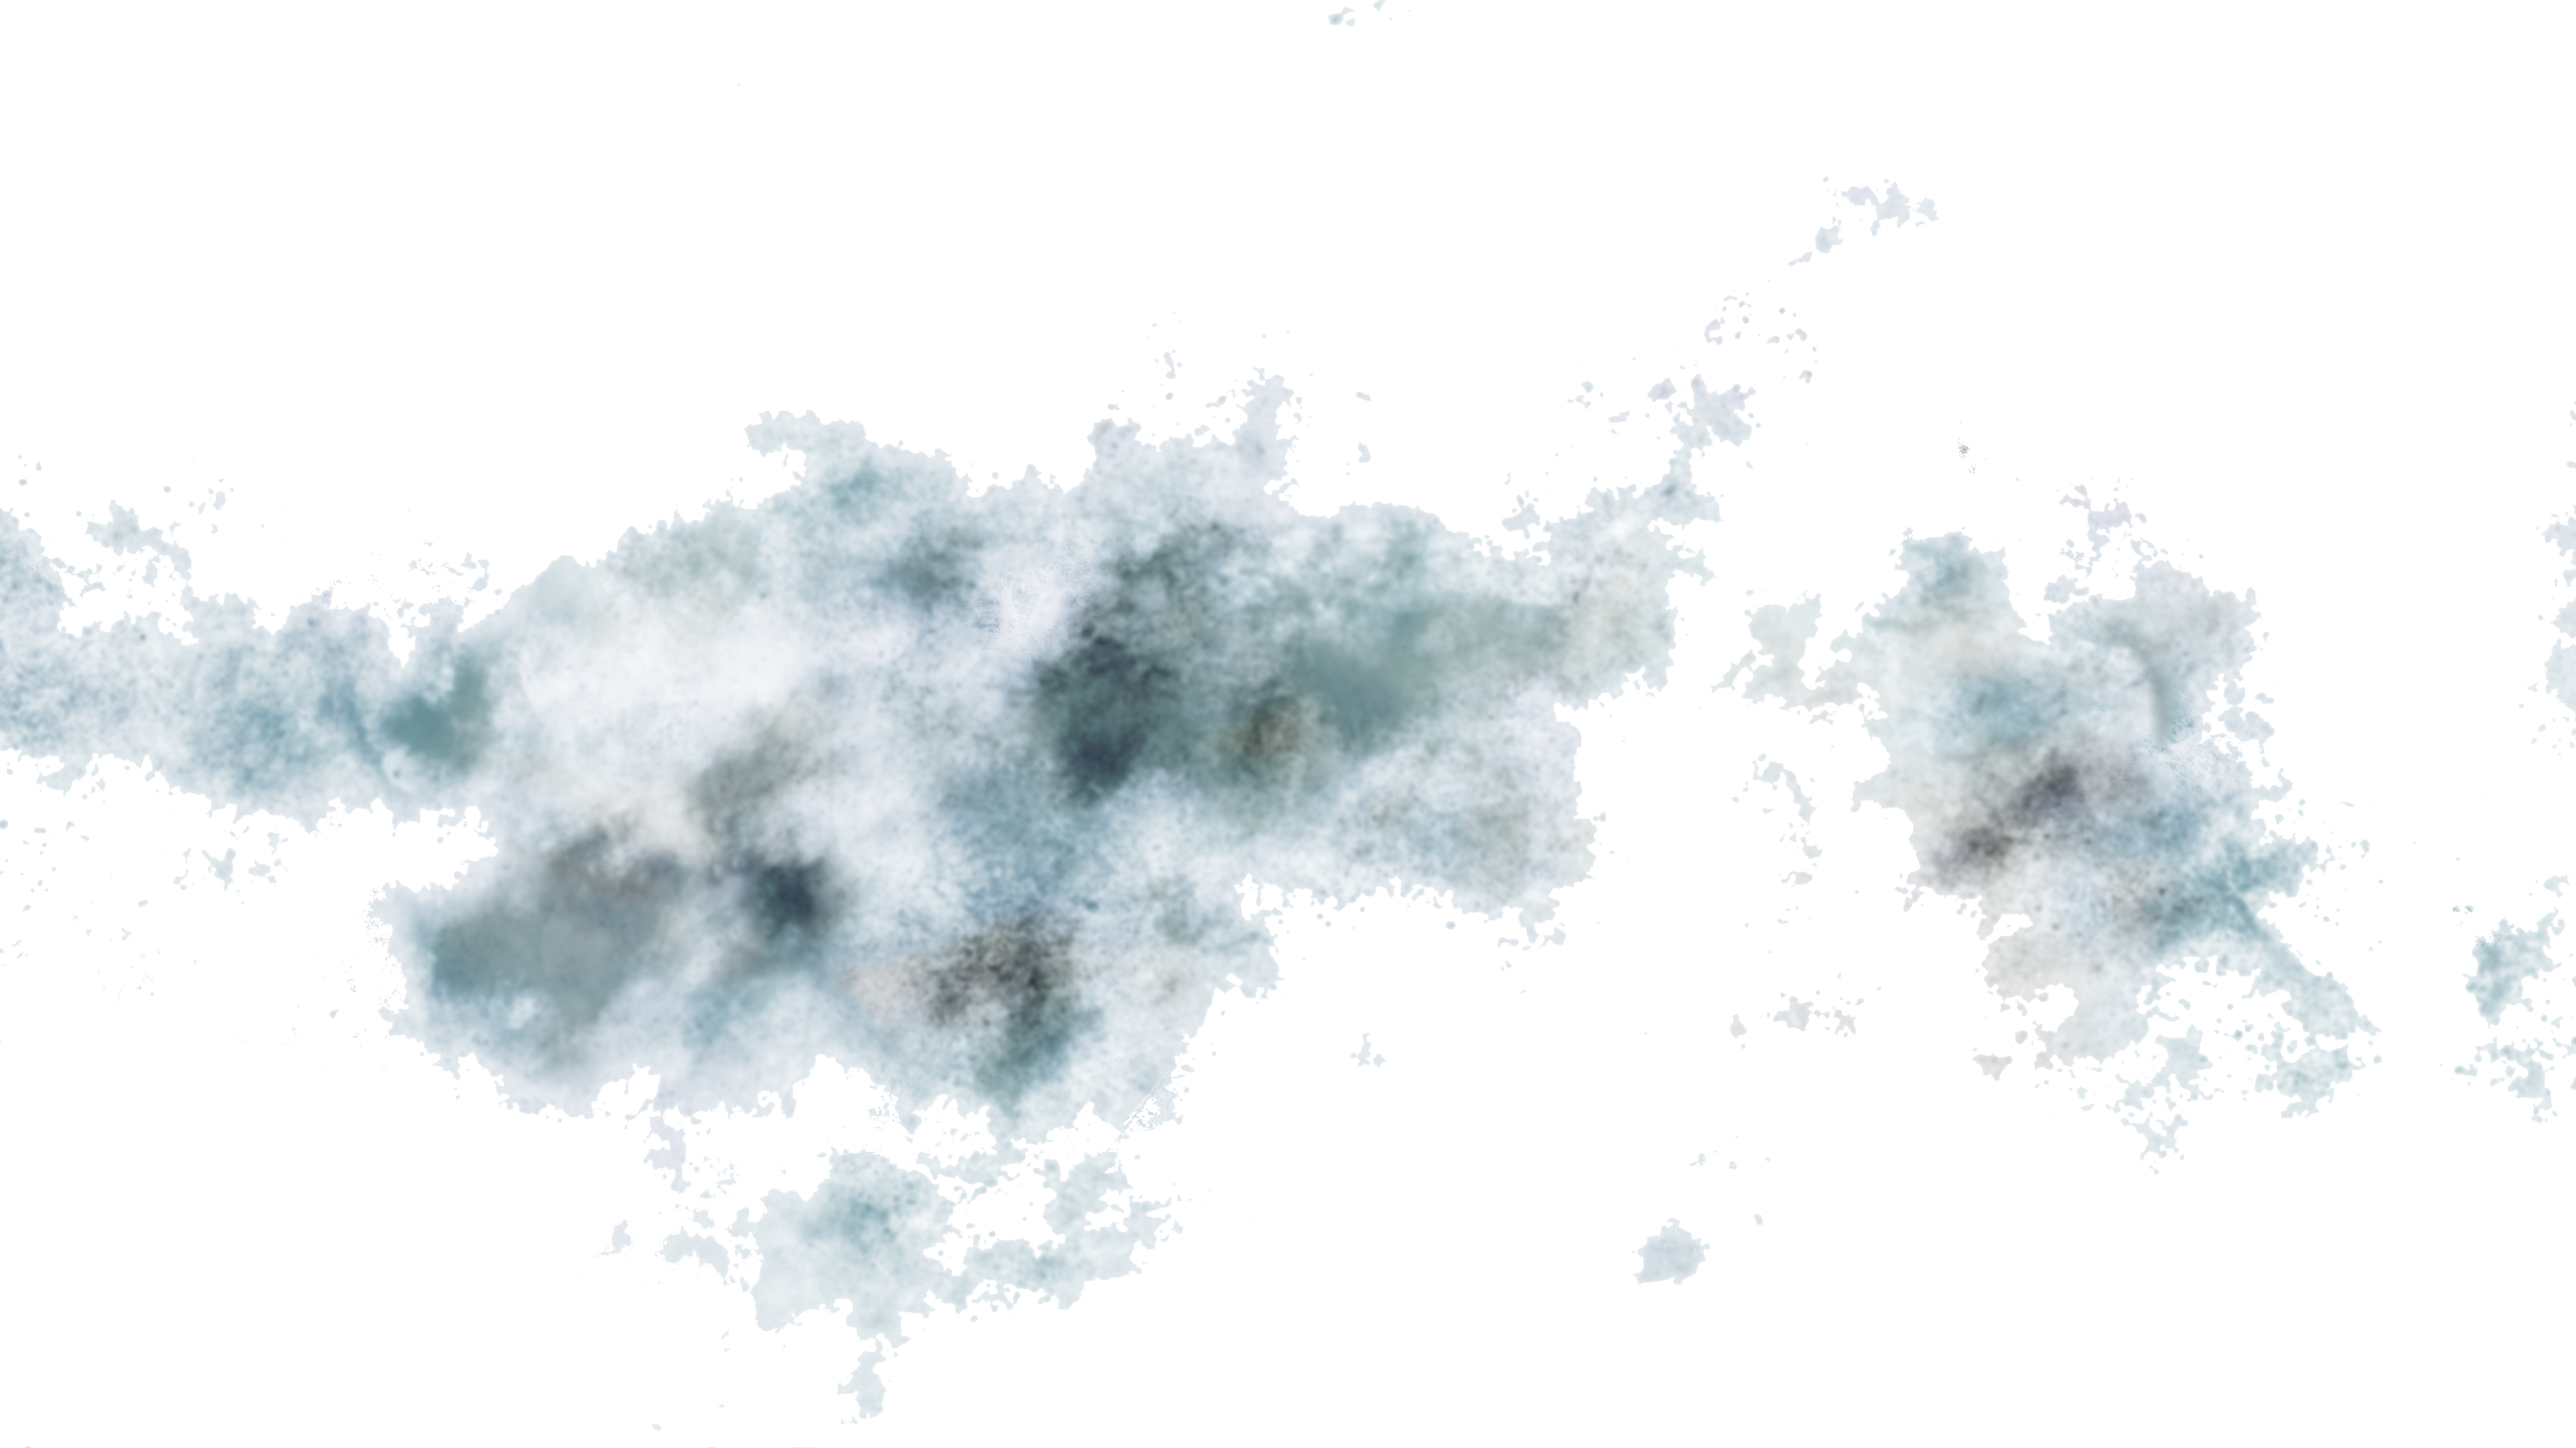 Snow Hd PNG Image